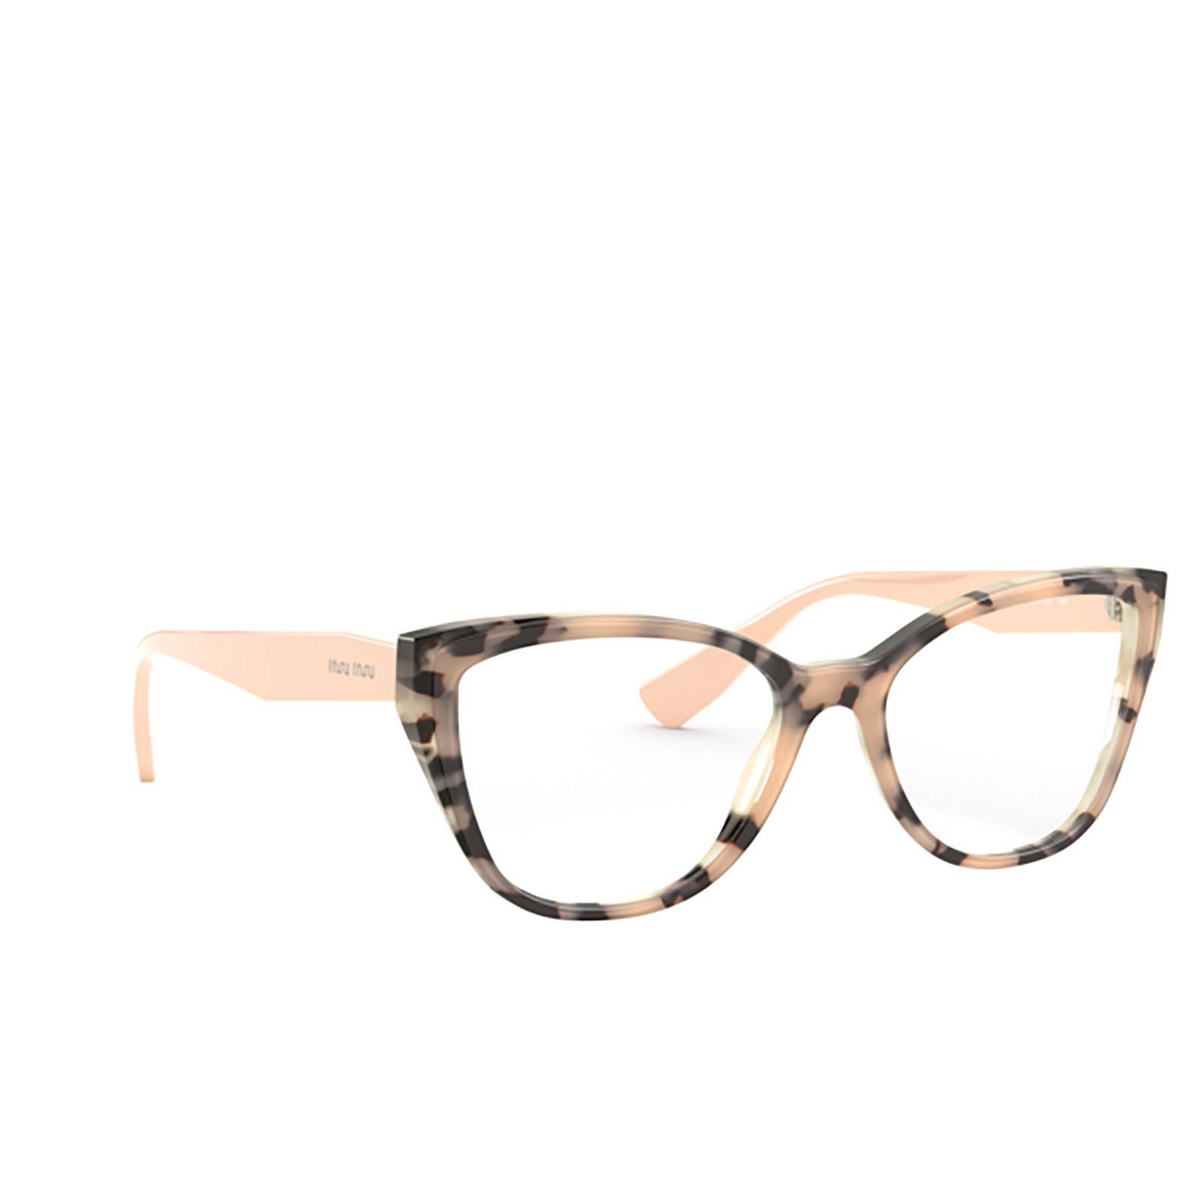 Miu Miu® Butterfly Eyeglasses: Core Collection MU 04SV color Havana Pink On Top 07D1O1 - three-quarters view.